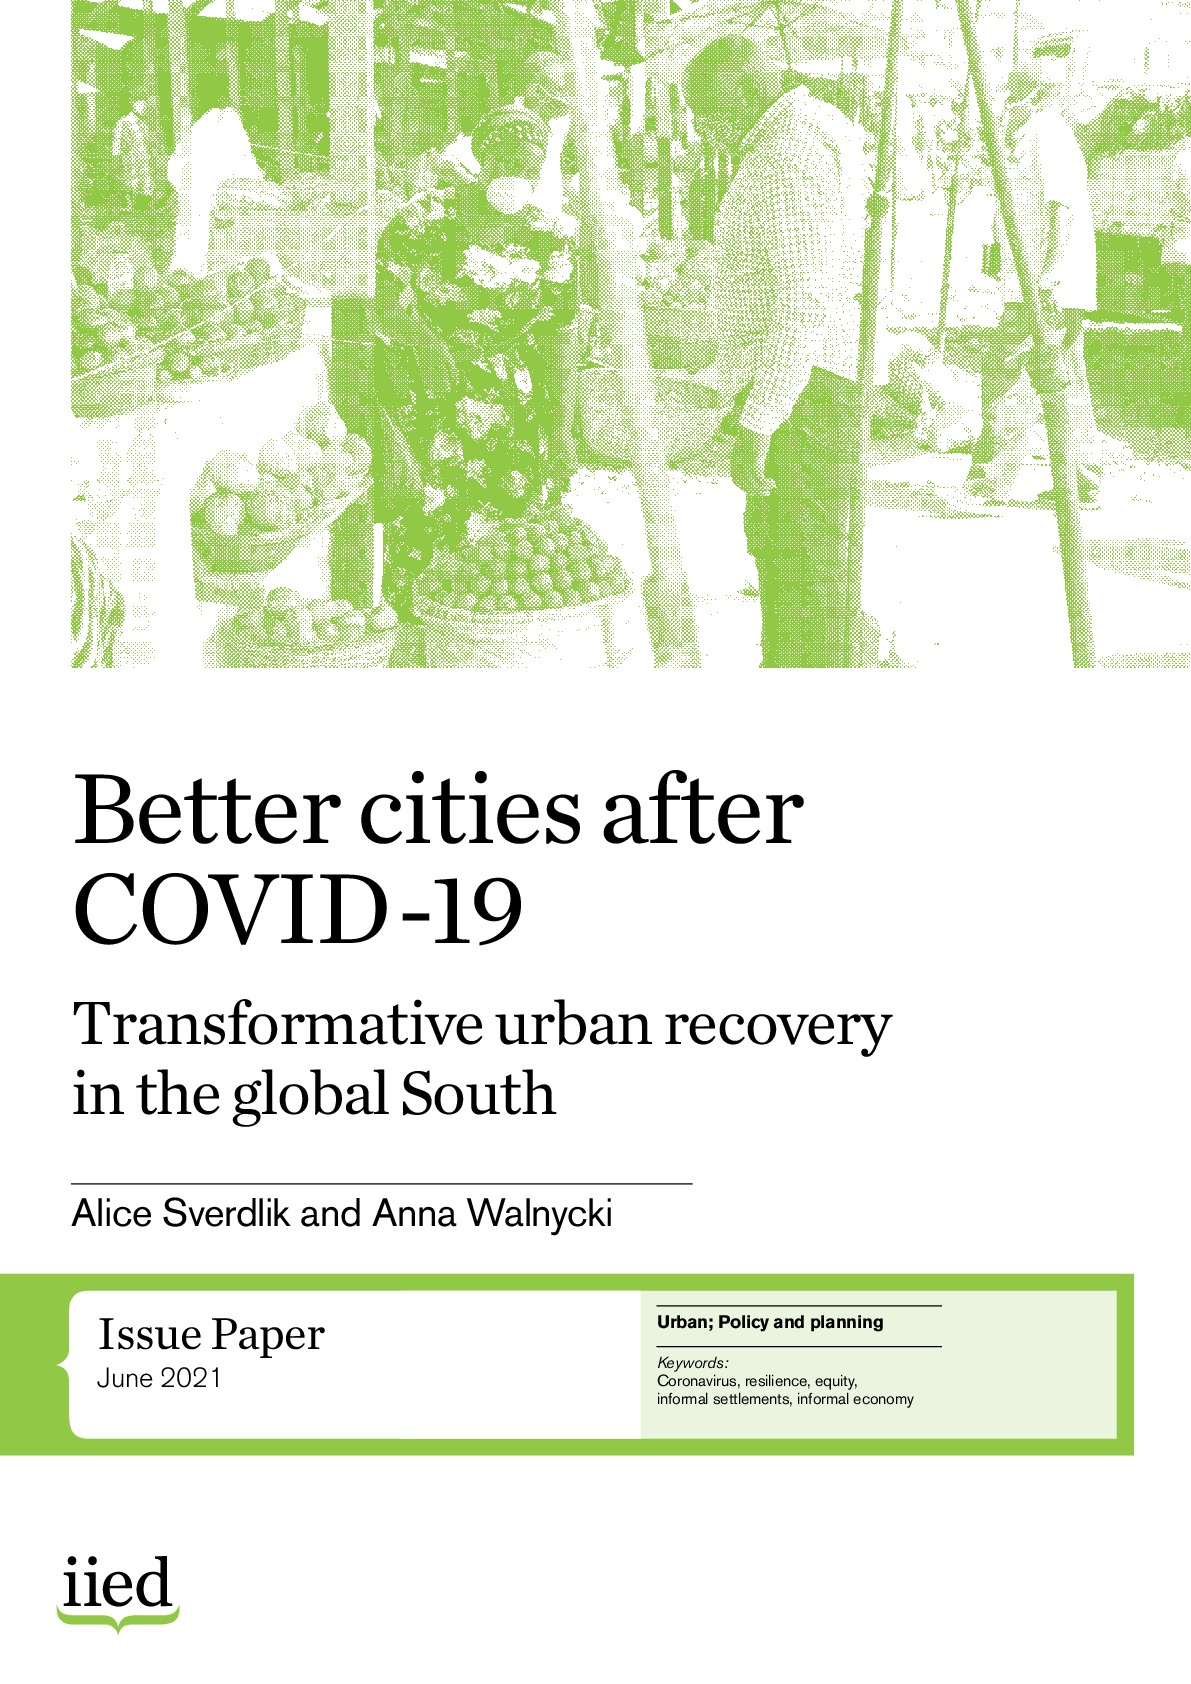 Better cities after COVID-19